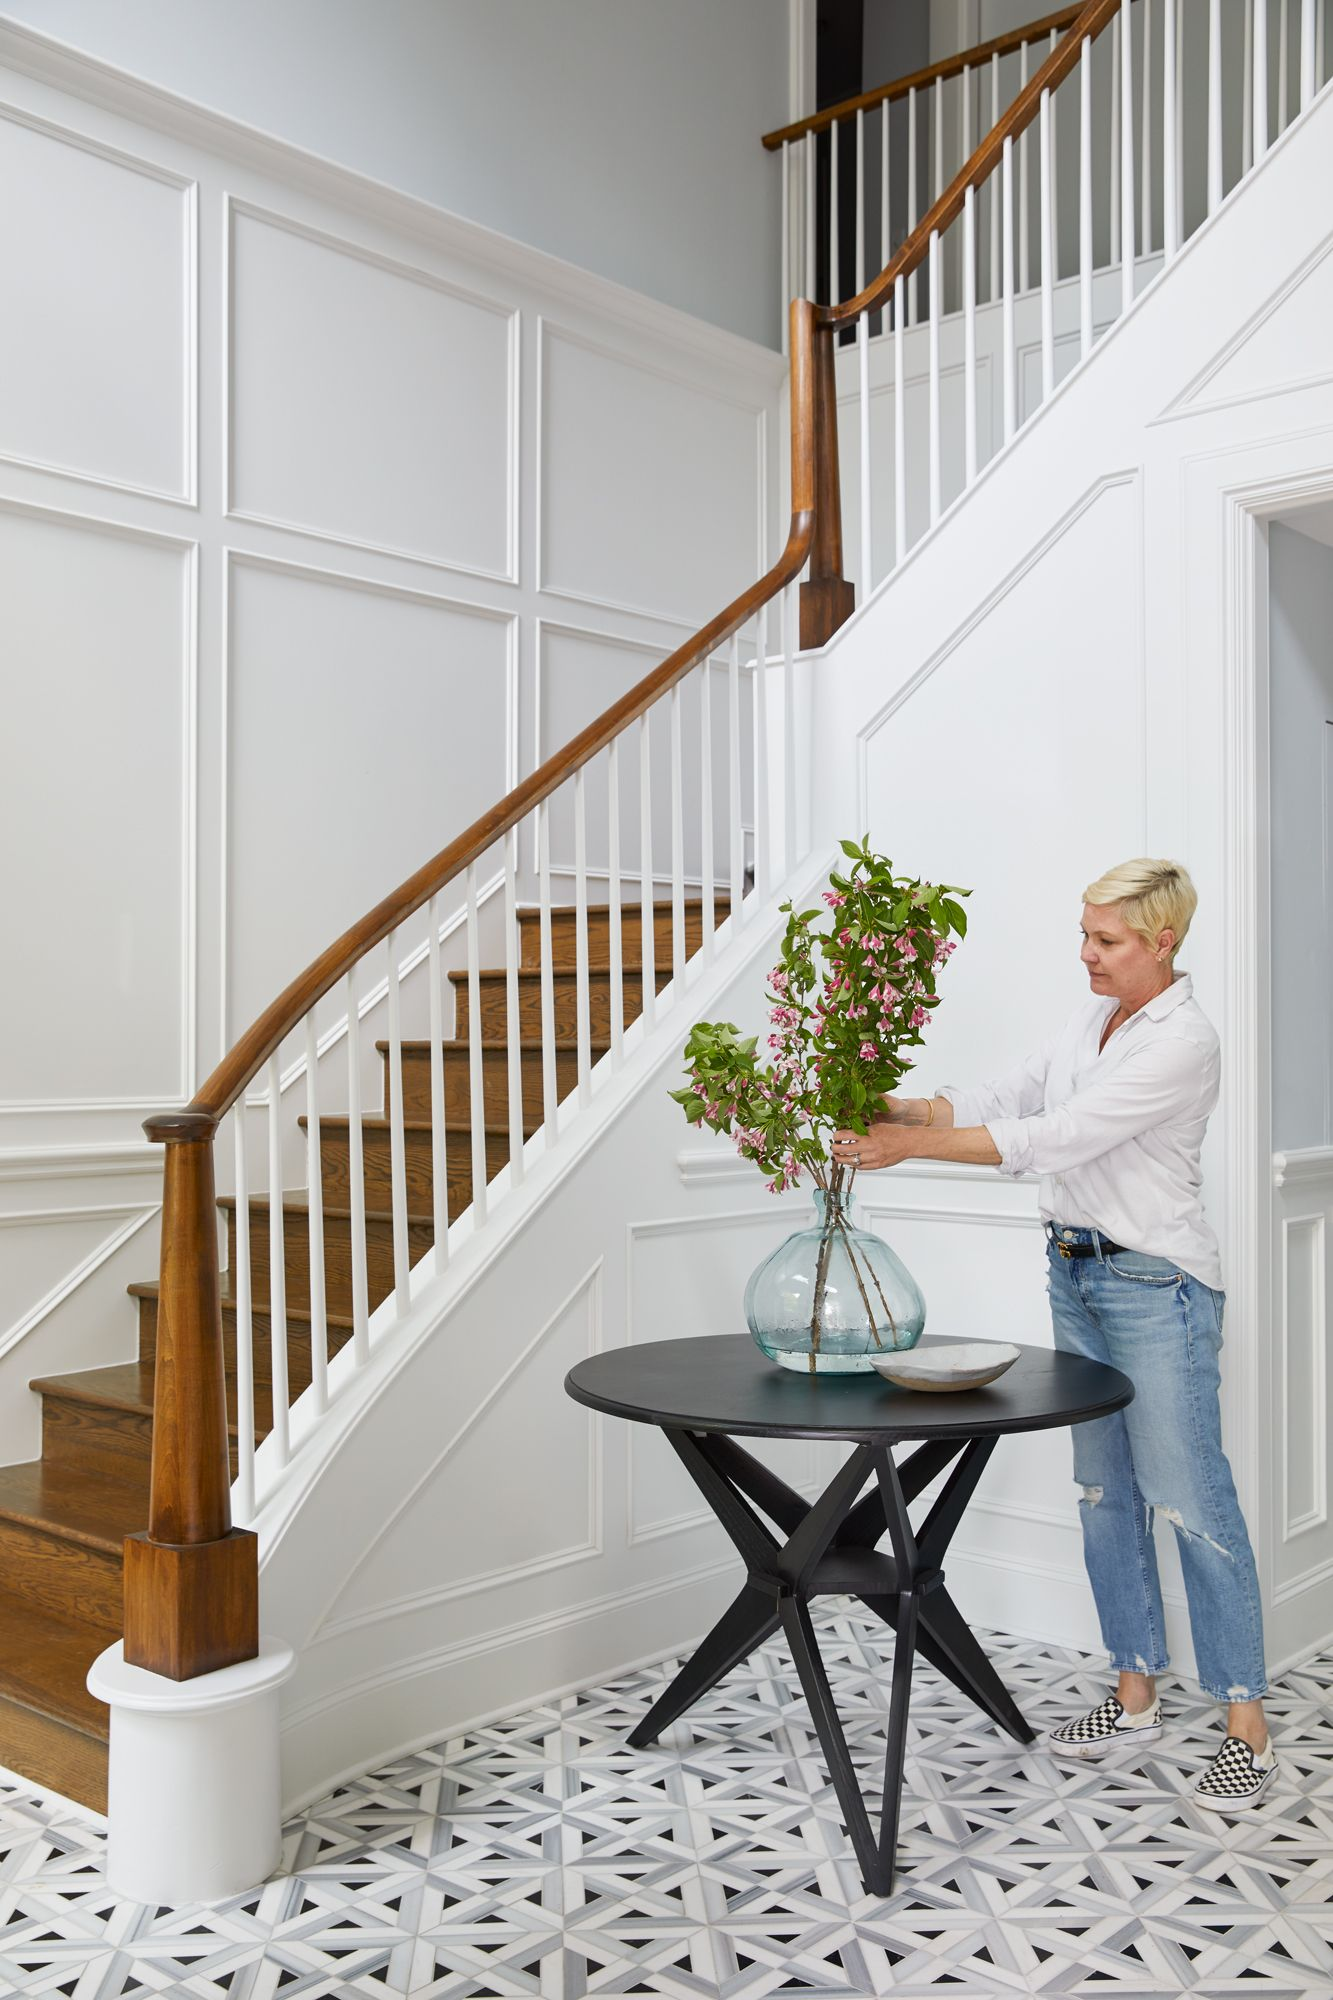 Portrait of a woman arranging flowers in entryway